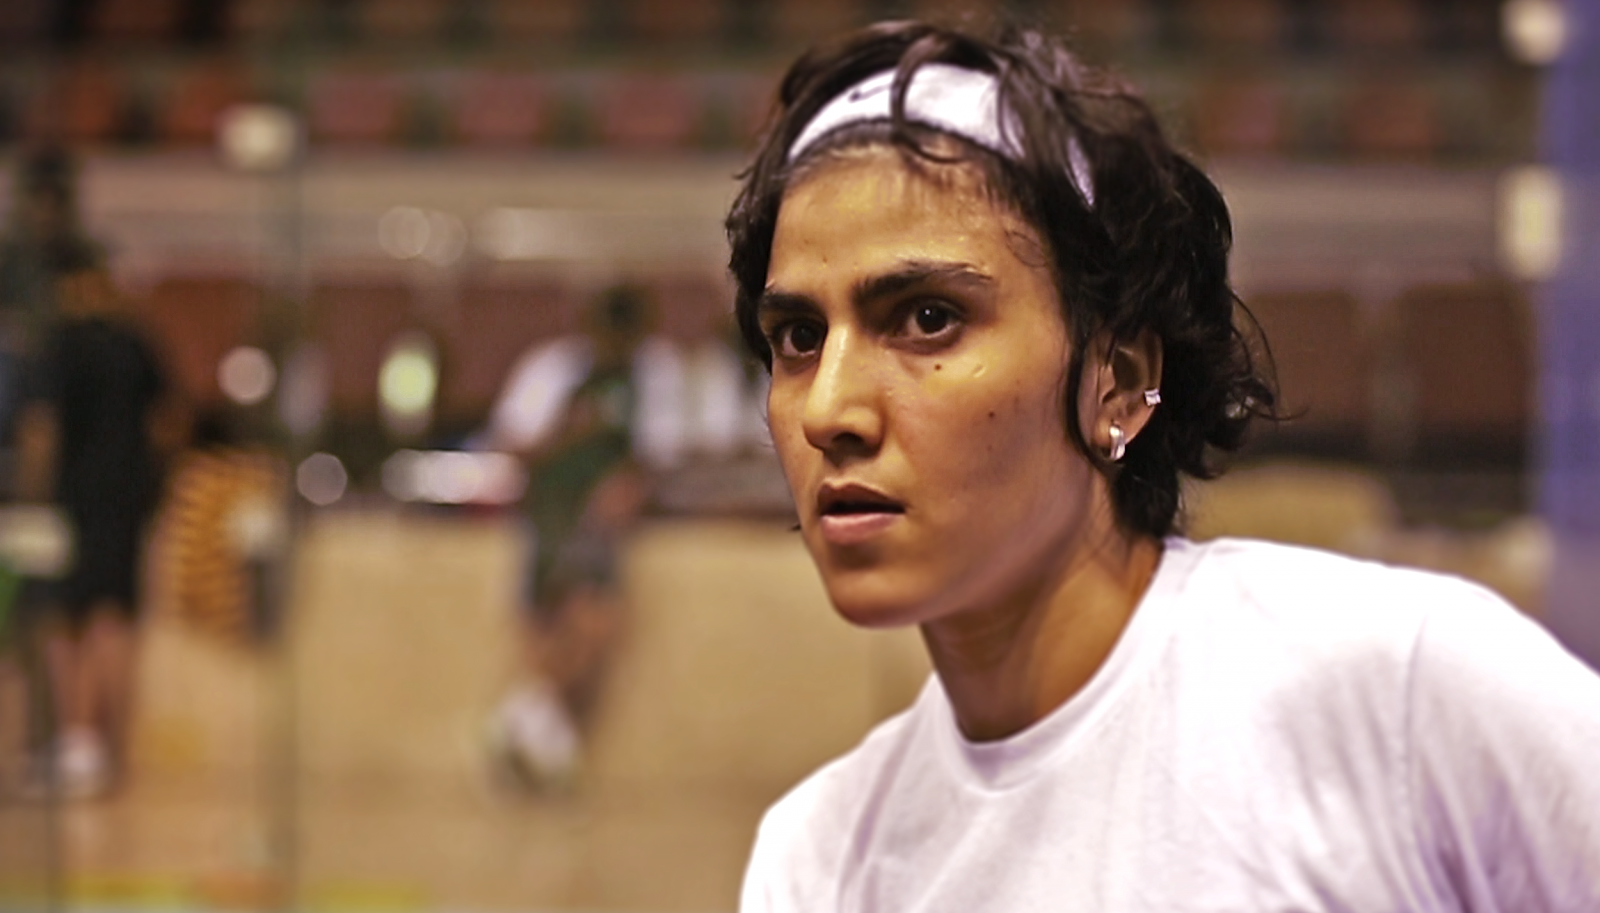 Maria Toorpakai defied death threats from the Taliban to become the number one female squash player in Pakistan